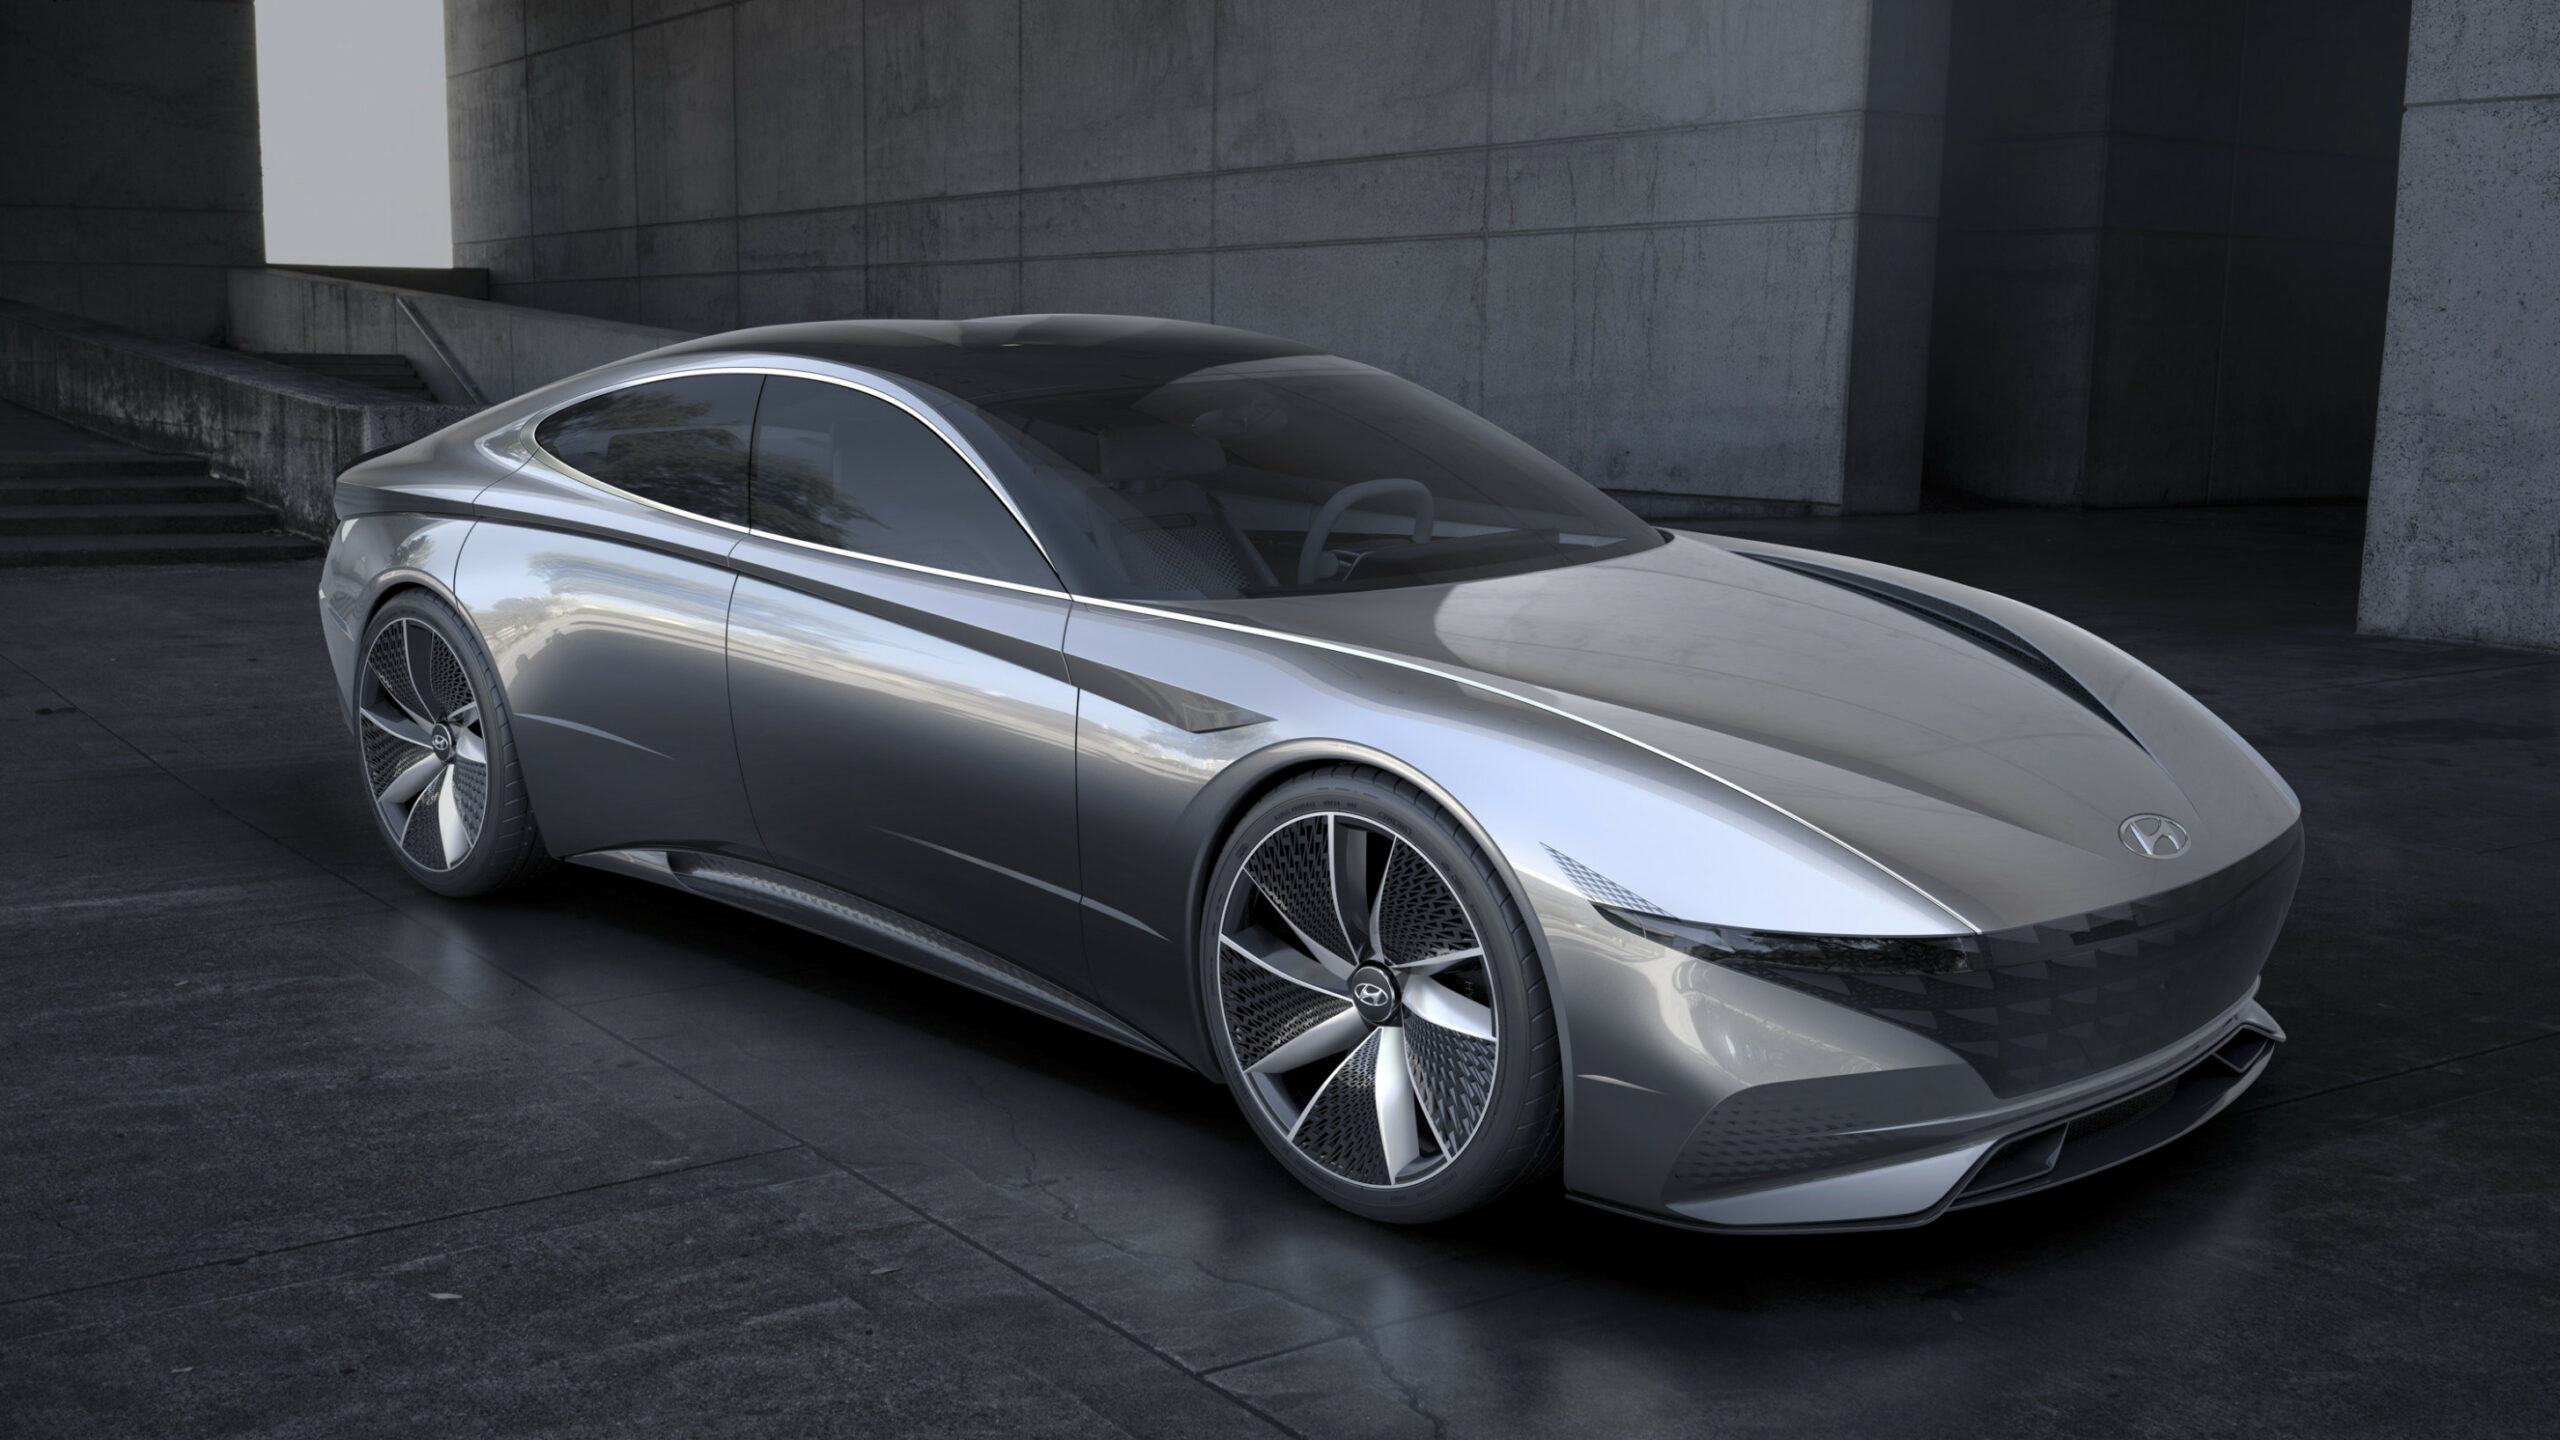 Hyundai Plotting A New Concept; Could Base The Next-Gen Sonata On ..